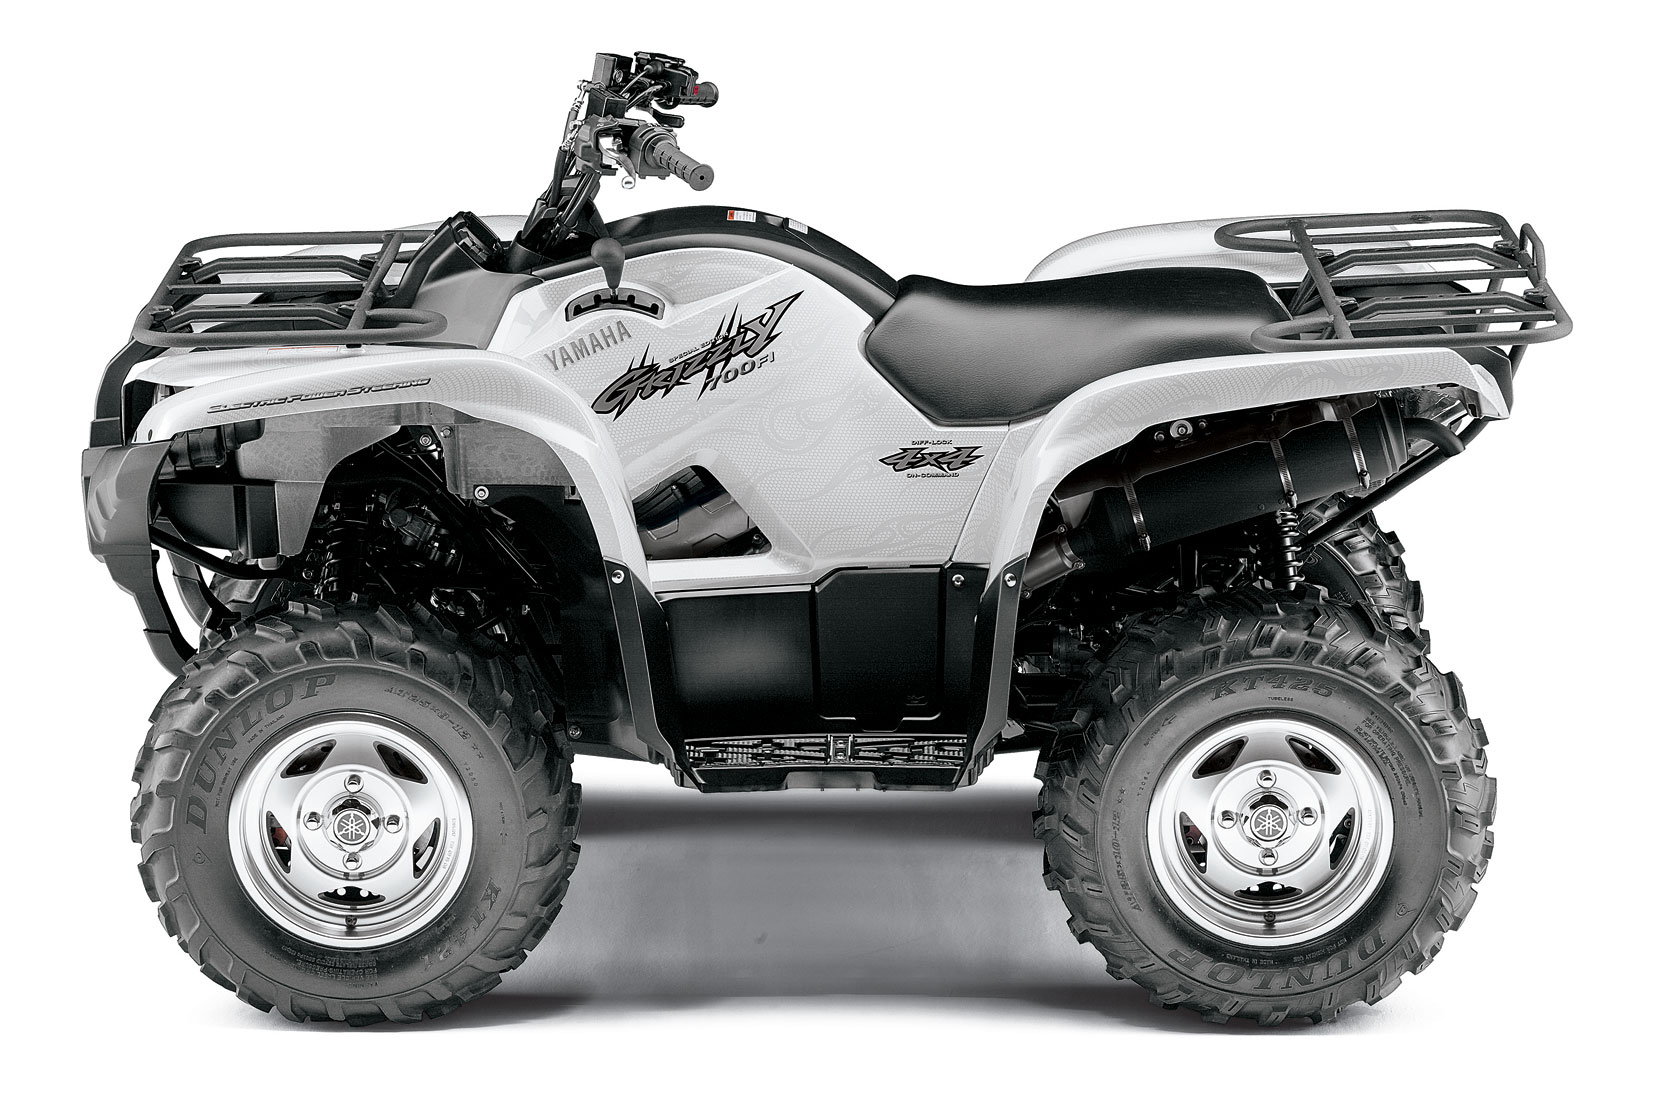 2010 yamaha grizzly 700 fi 4x4 eps special edition rh totalmotorcycle com 2007 yamaha grizzly 700 fi service manual yamaha rhino 700 fi service manual